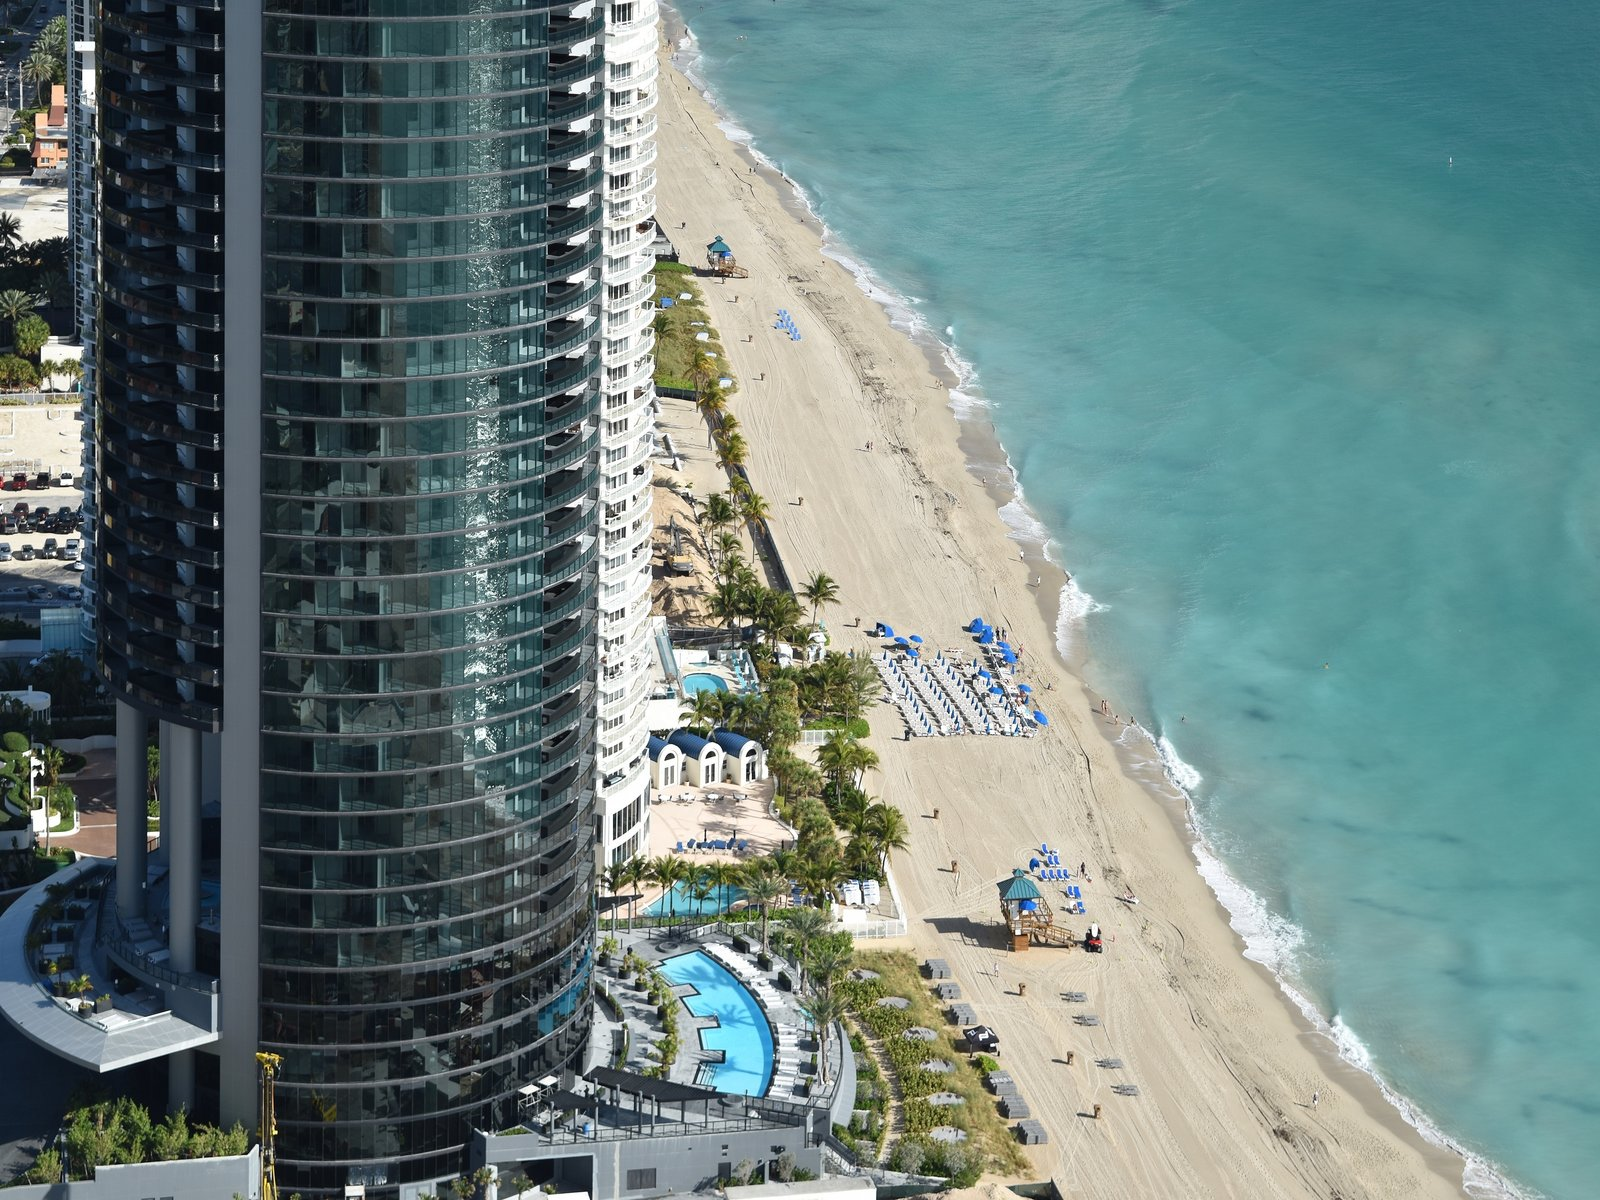 Soaring 650 feet in the air, Porsche Design Tower Miami is currently the tallest building on Sunny Isles Beach. This aerial view shows the landscaped pool deck and the sunset terrace.  Photo 2 of 11 in Porsche Design's Lavish Residential Tower in Miami Lifts Residents and Cars Sky High